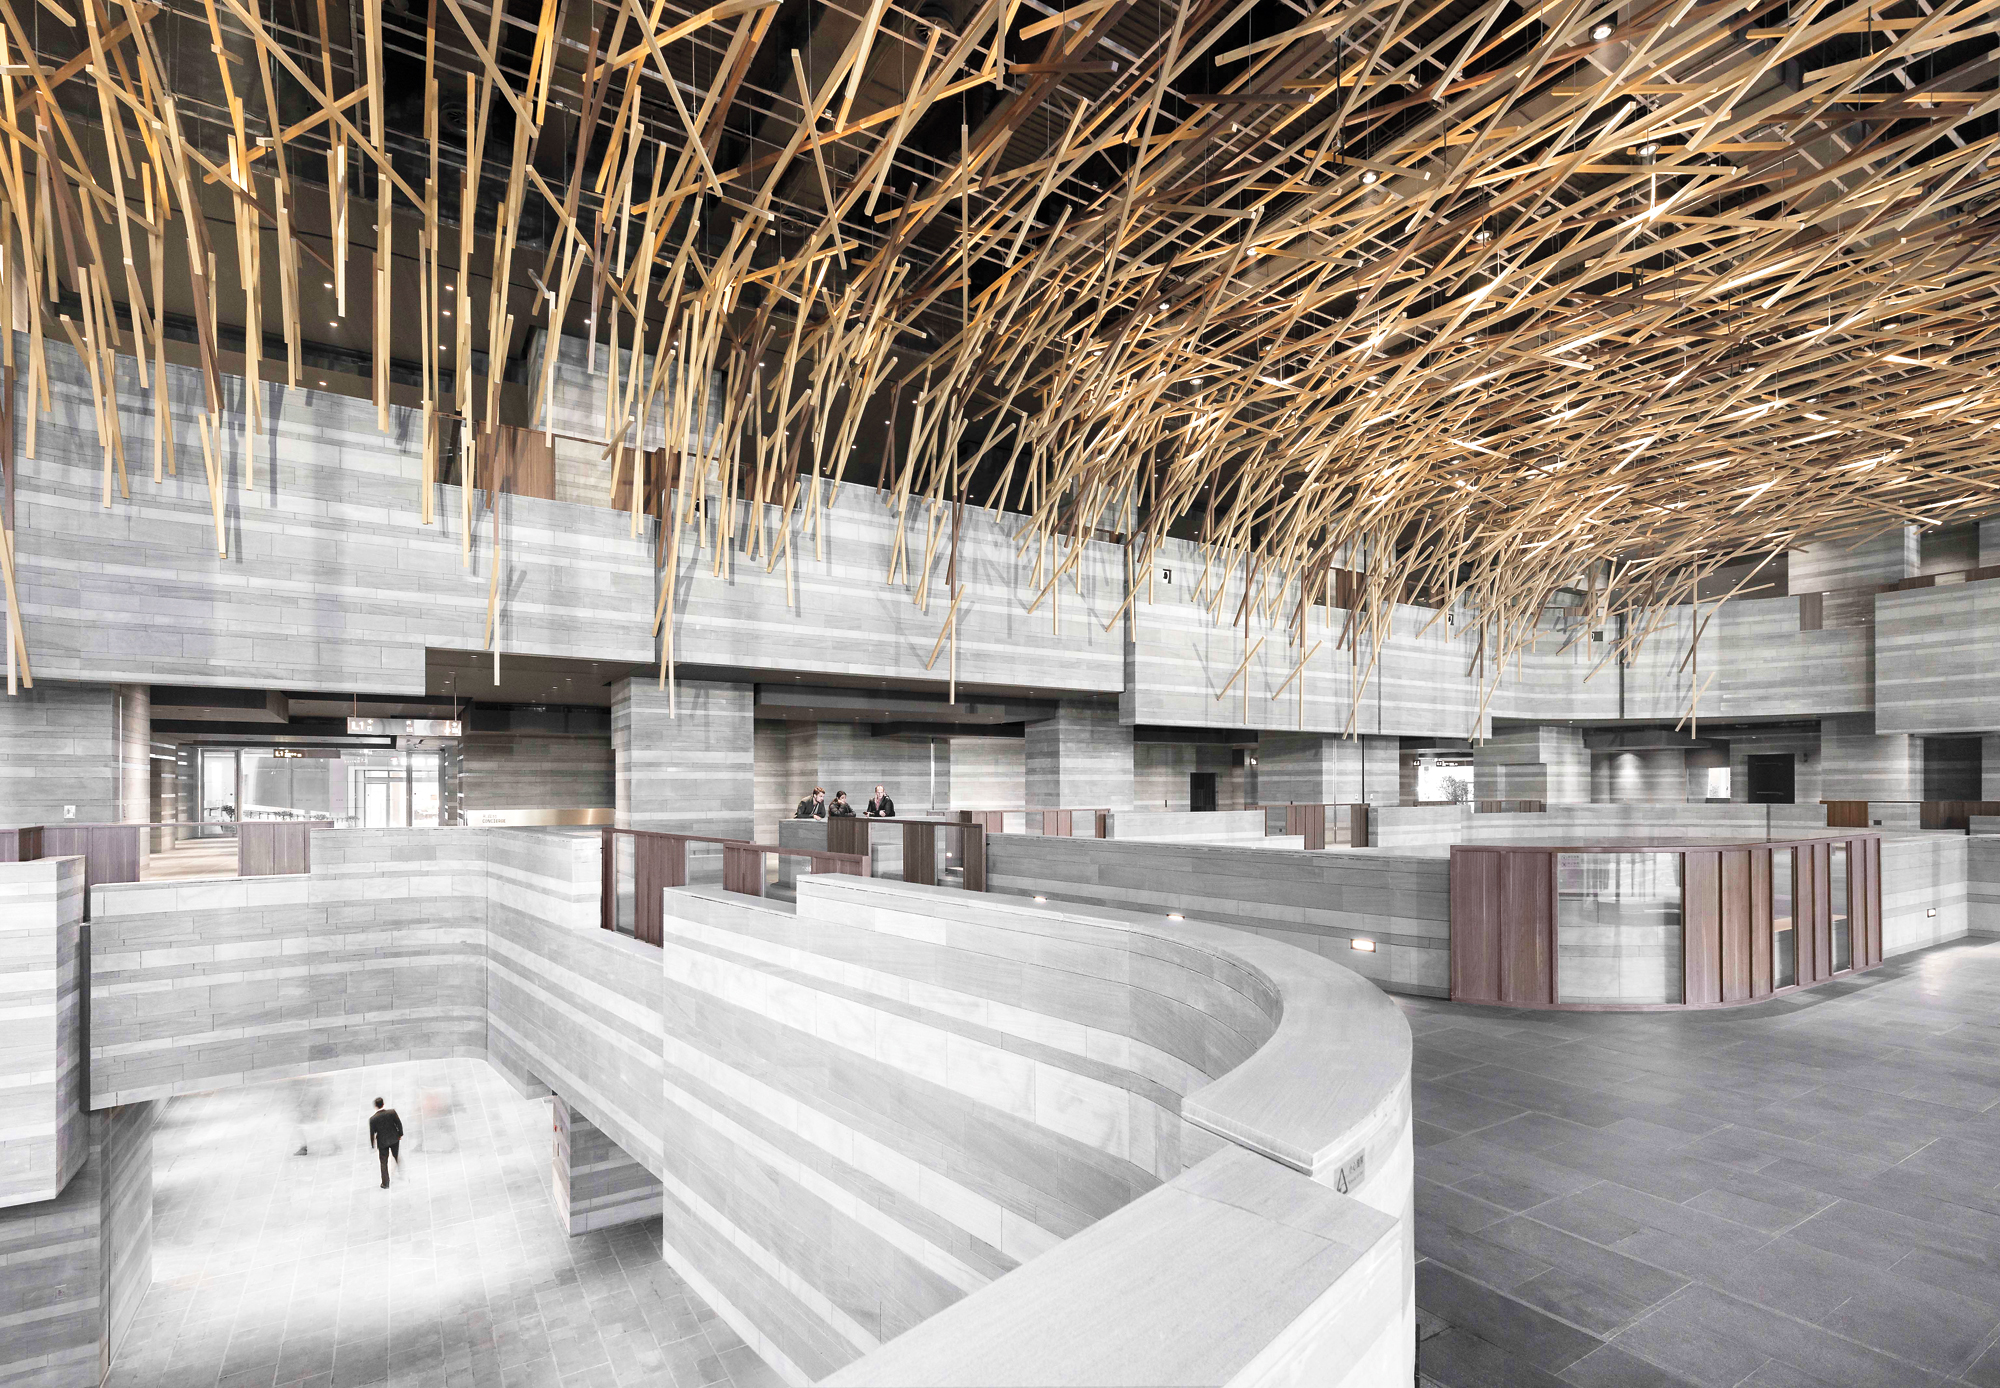 Hub Performance And Exhibition Center By Neri U0026 Hu: 2016 Best Of Year  Winner For Entertainment